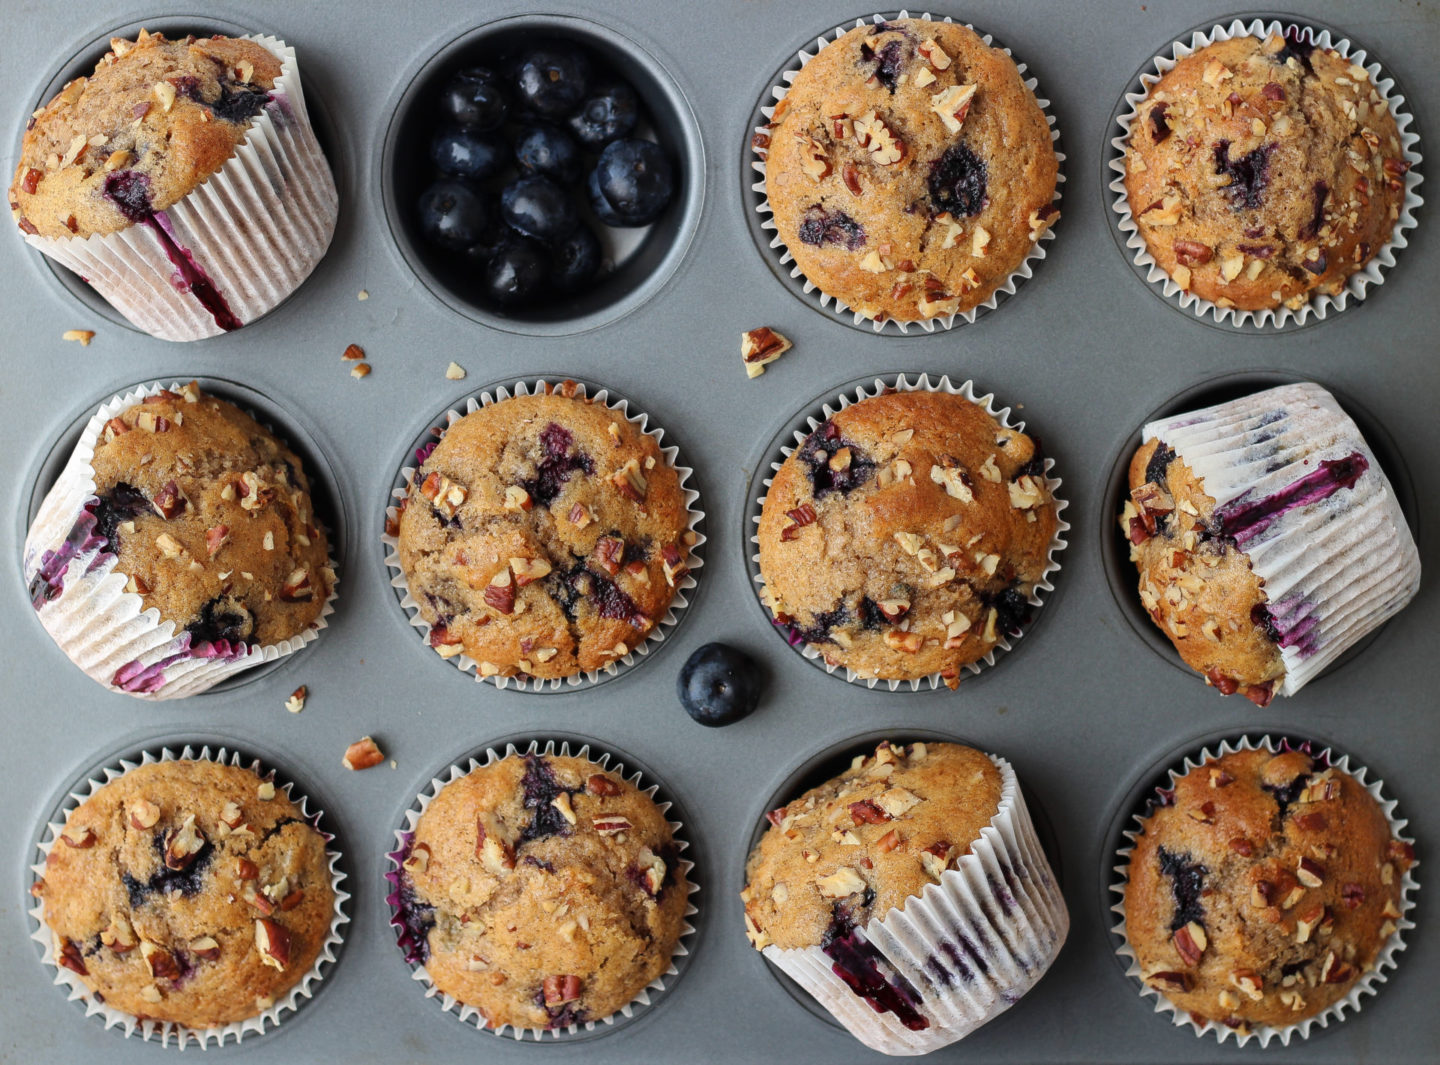 Muffin tray filled with blueberry nut muffins and blueberries